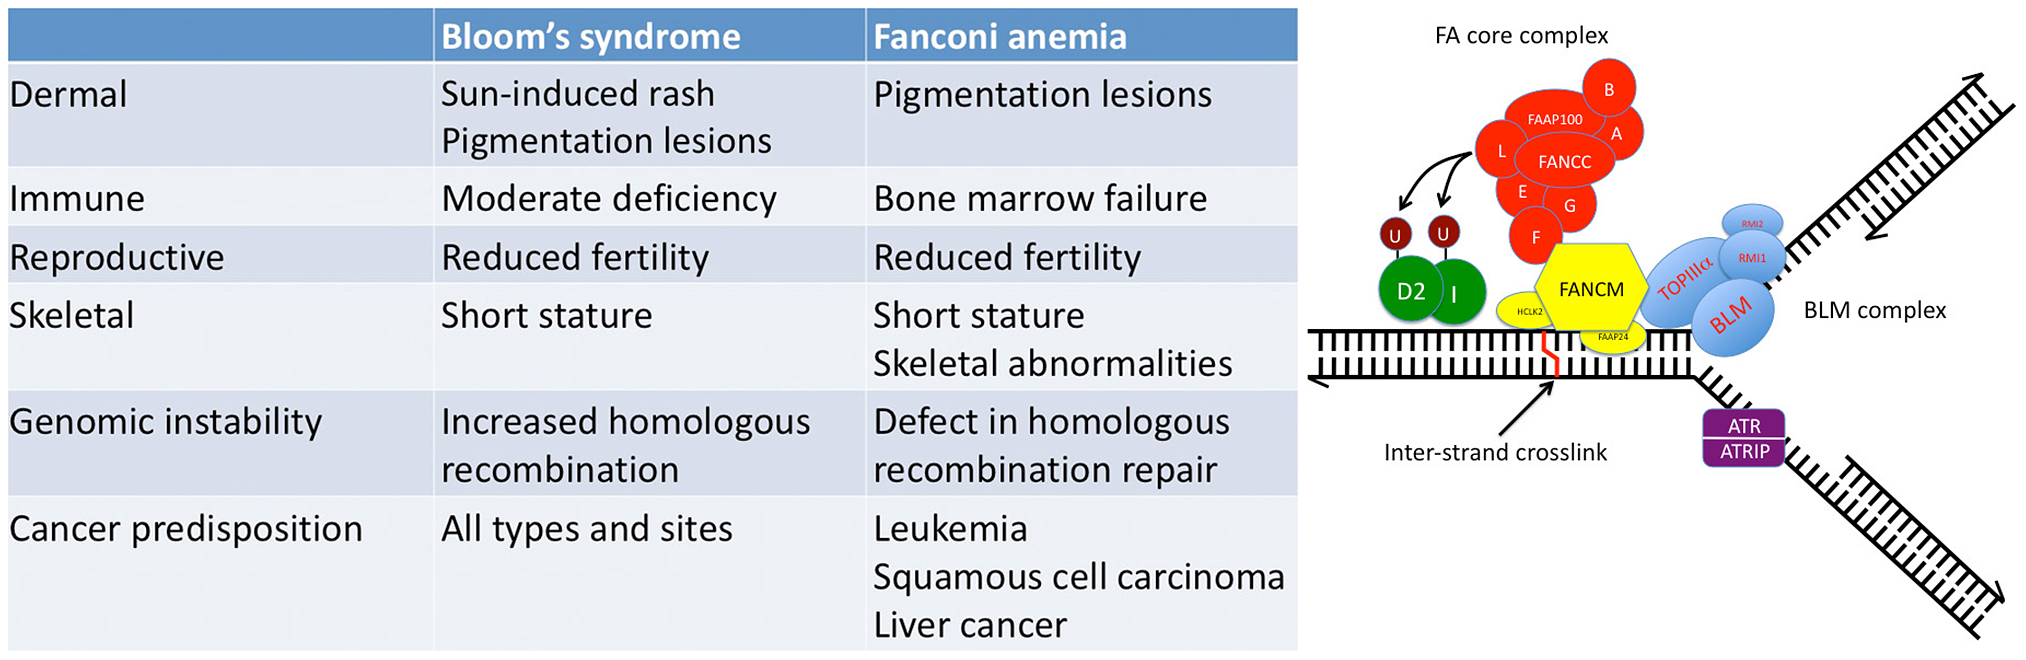 Fanconi anemia (FA) and Bloom's syndrome (BS) overlap at the clinical and molecular levels.